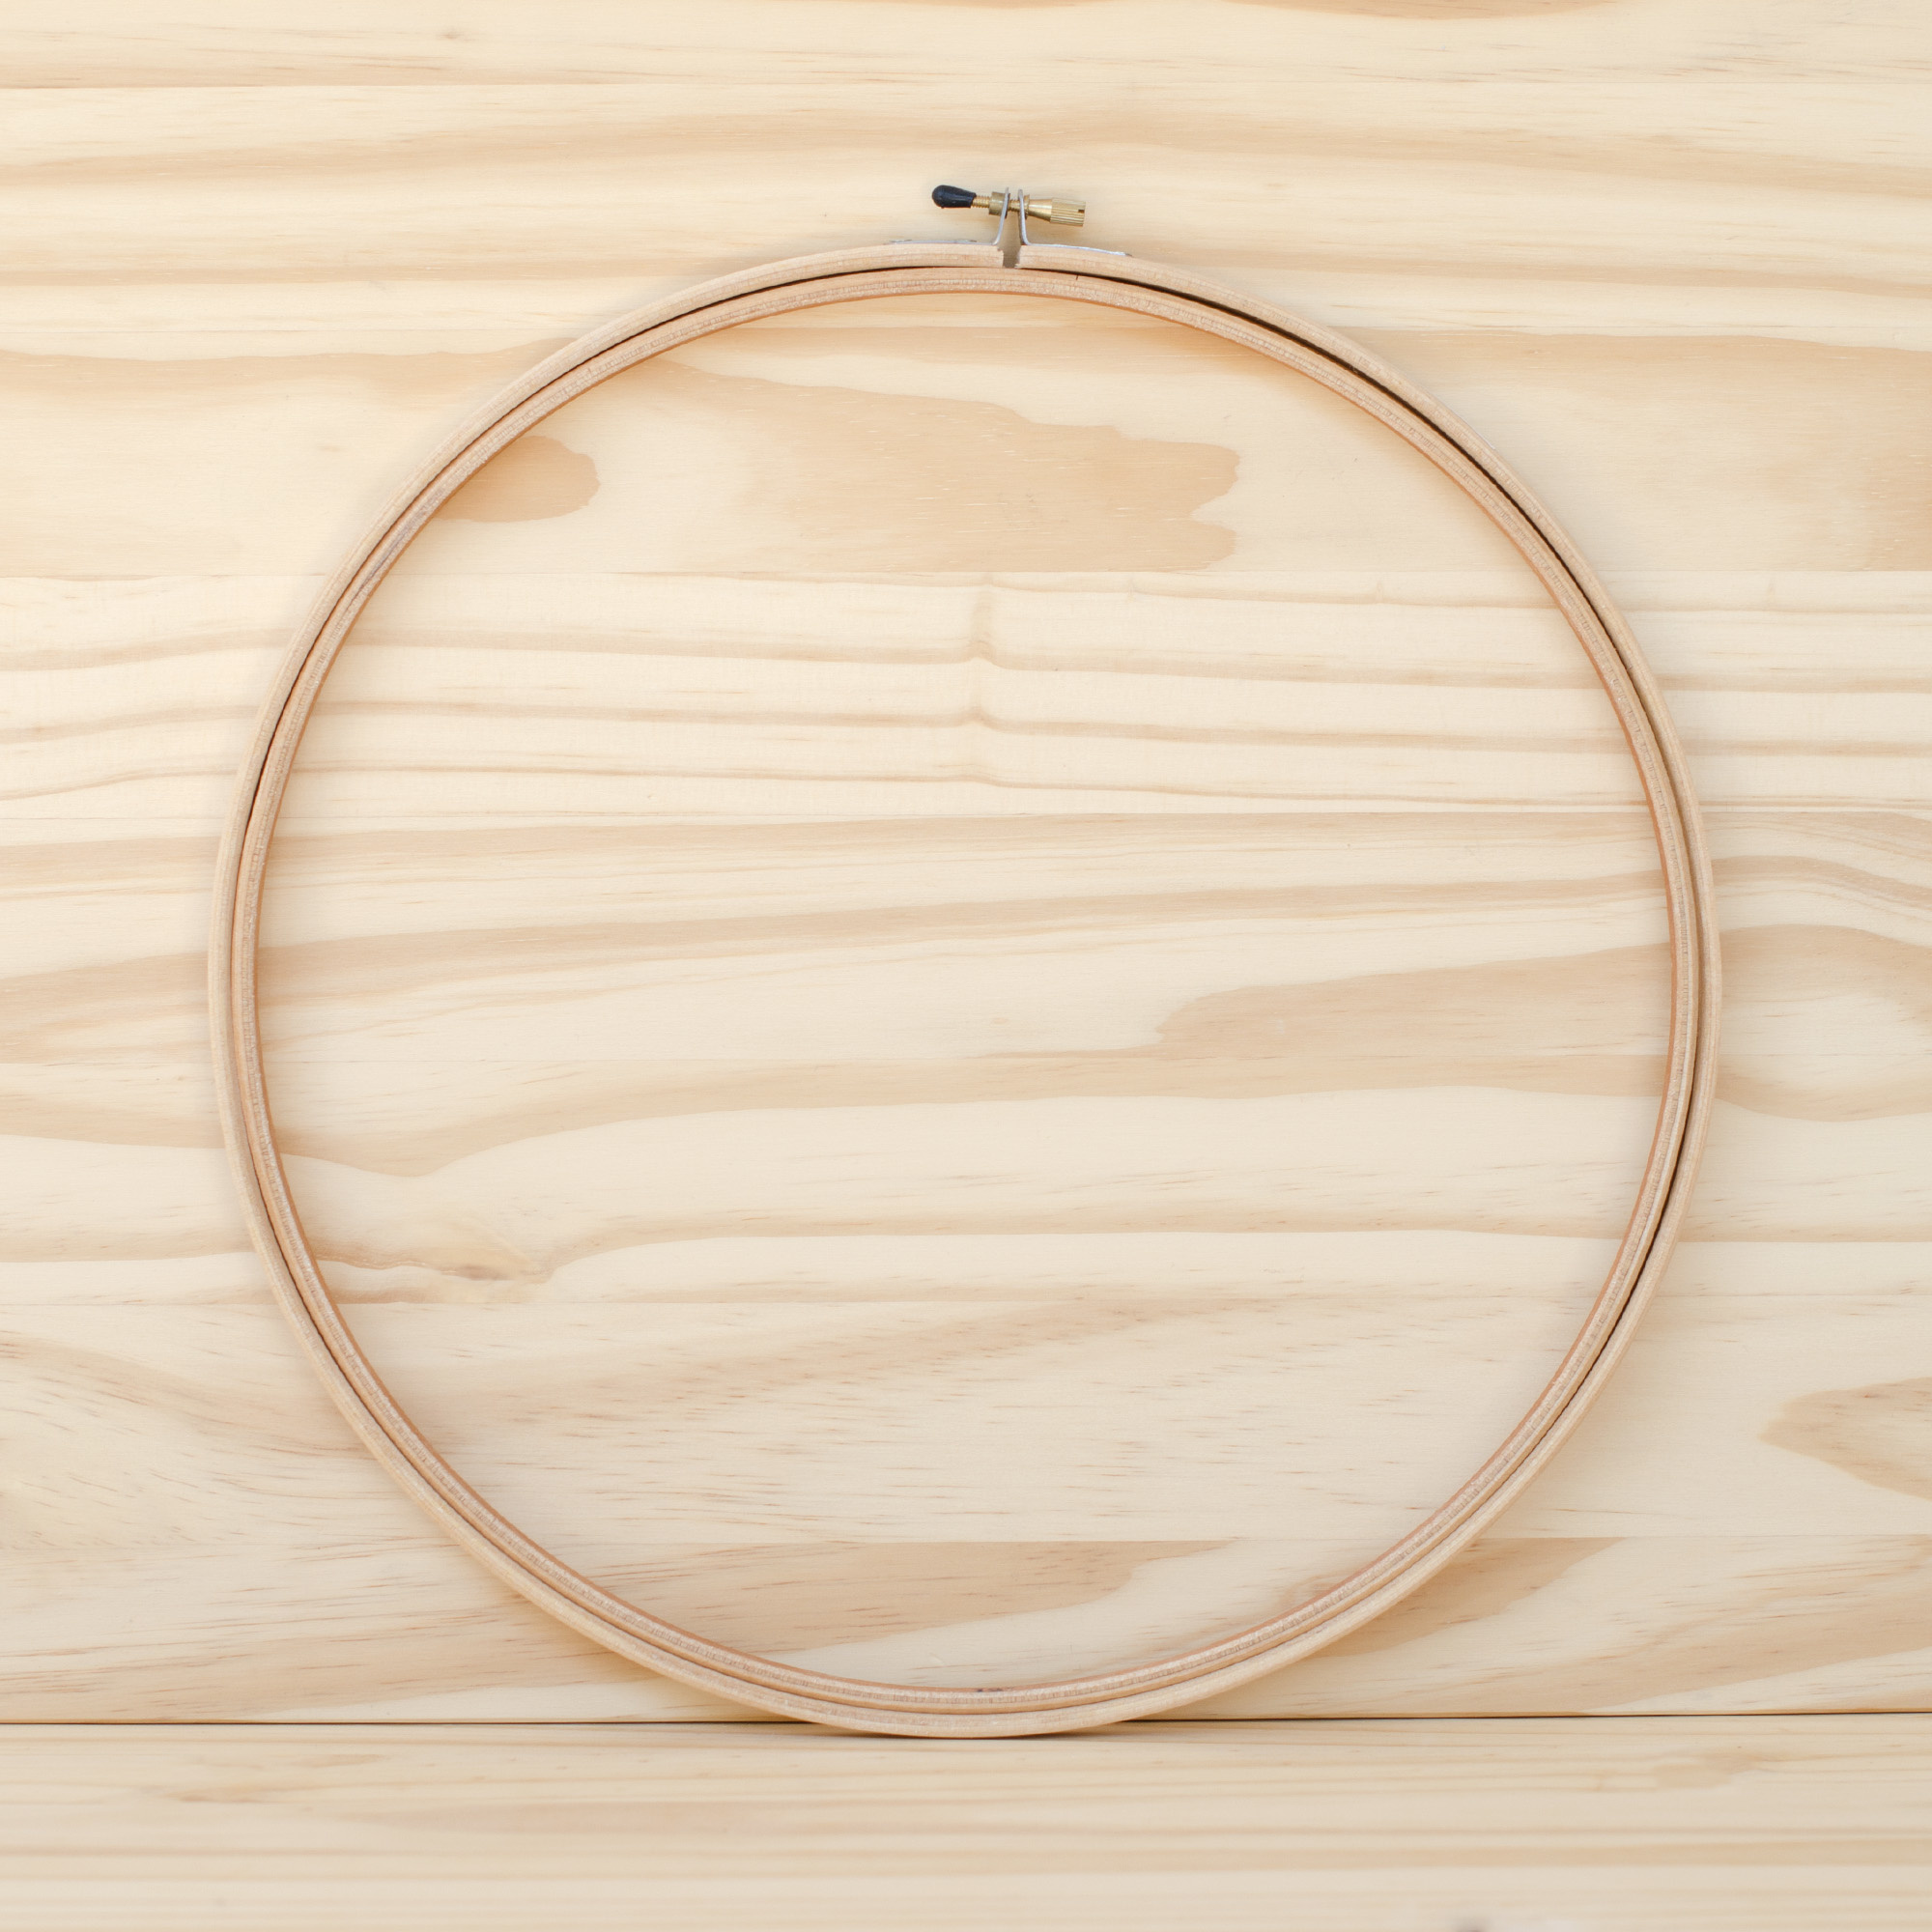 Wood Embroidery Hoop : 12""